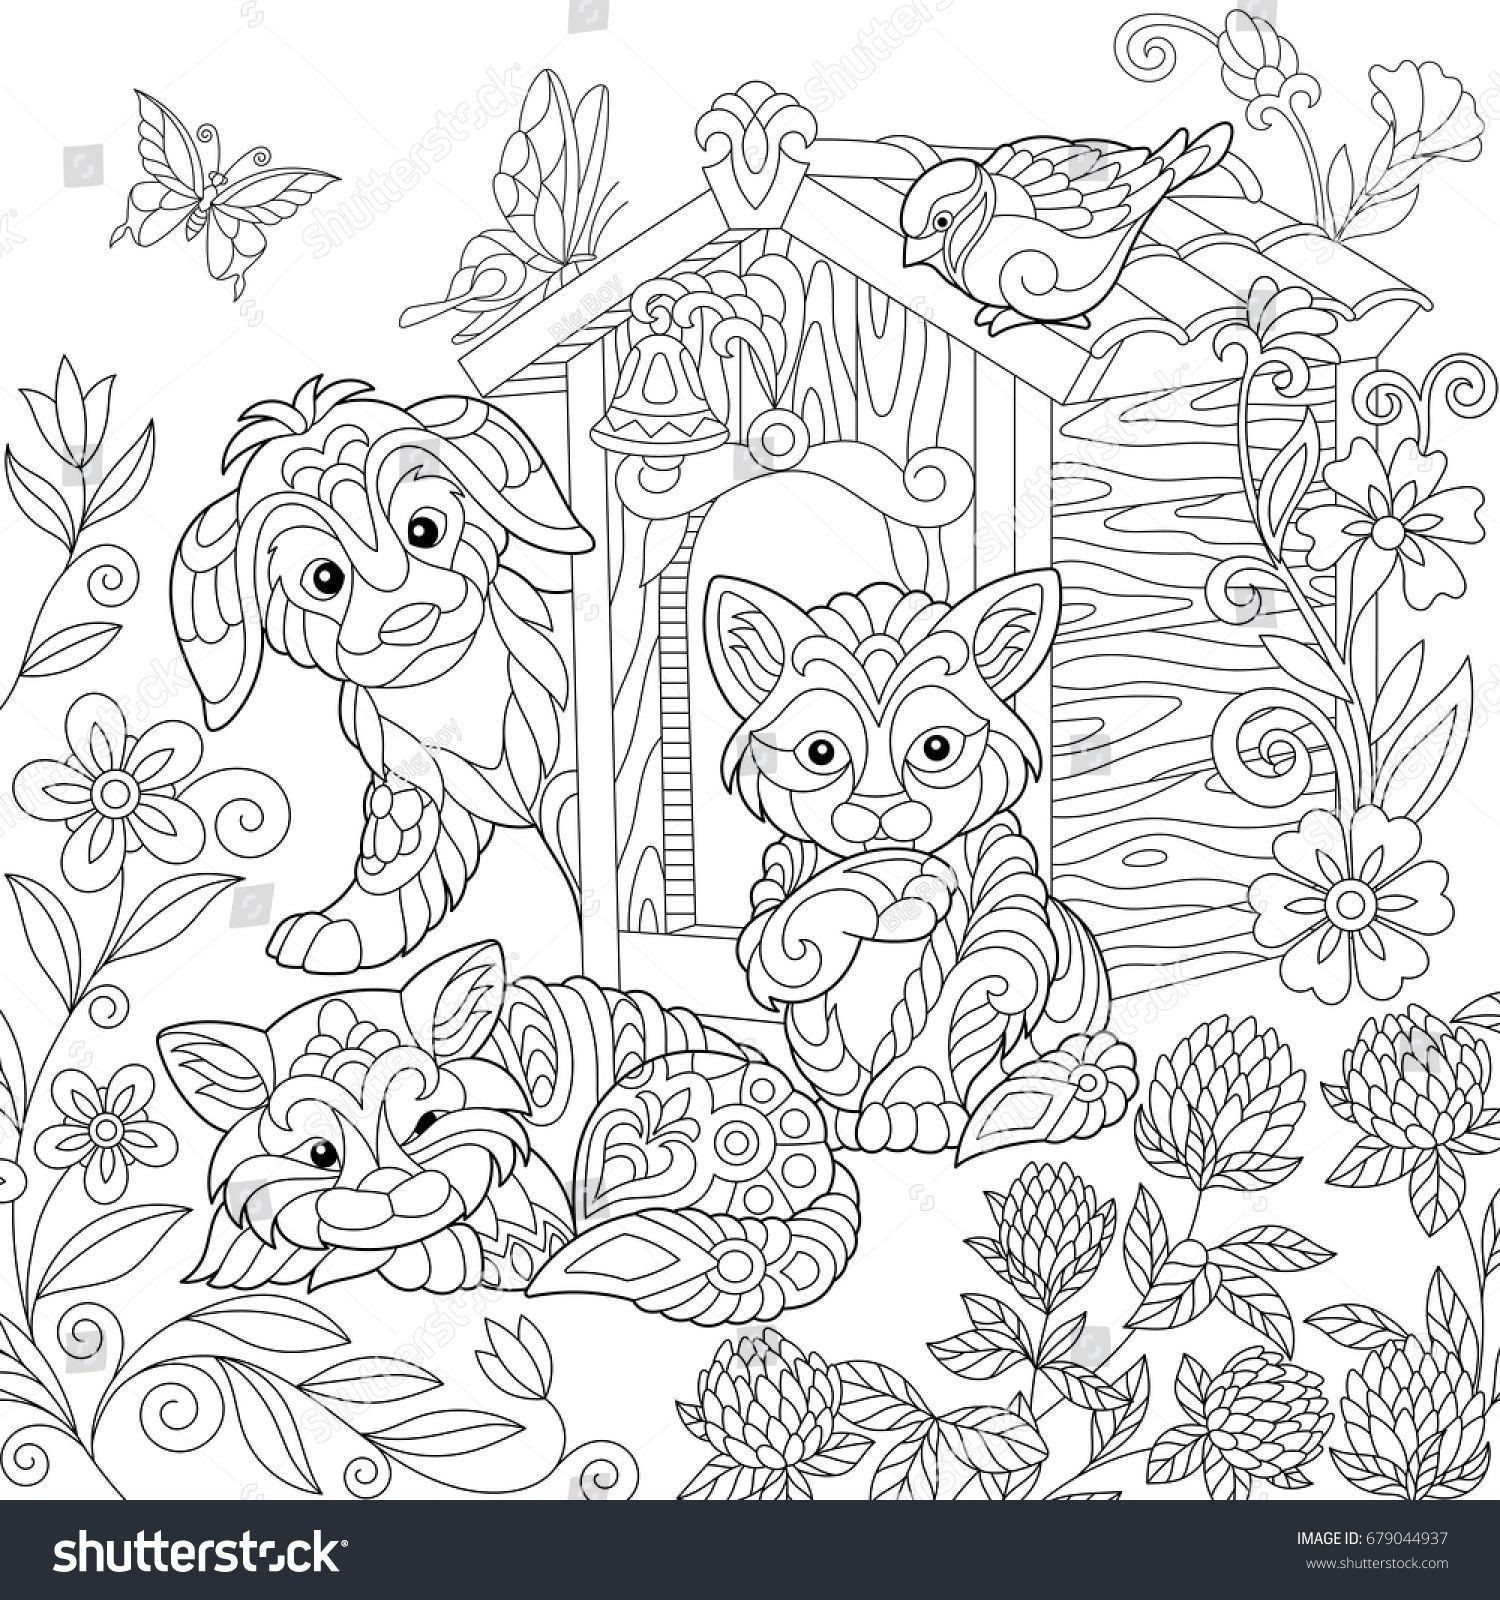 Coloring Pages Of Kittens Luxury Coloring Pages Rudolph In